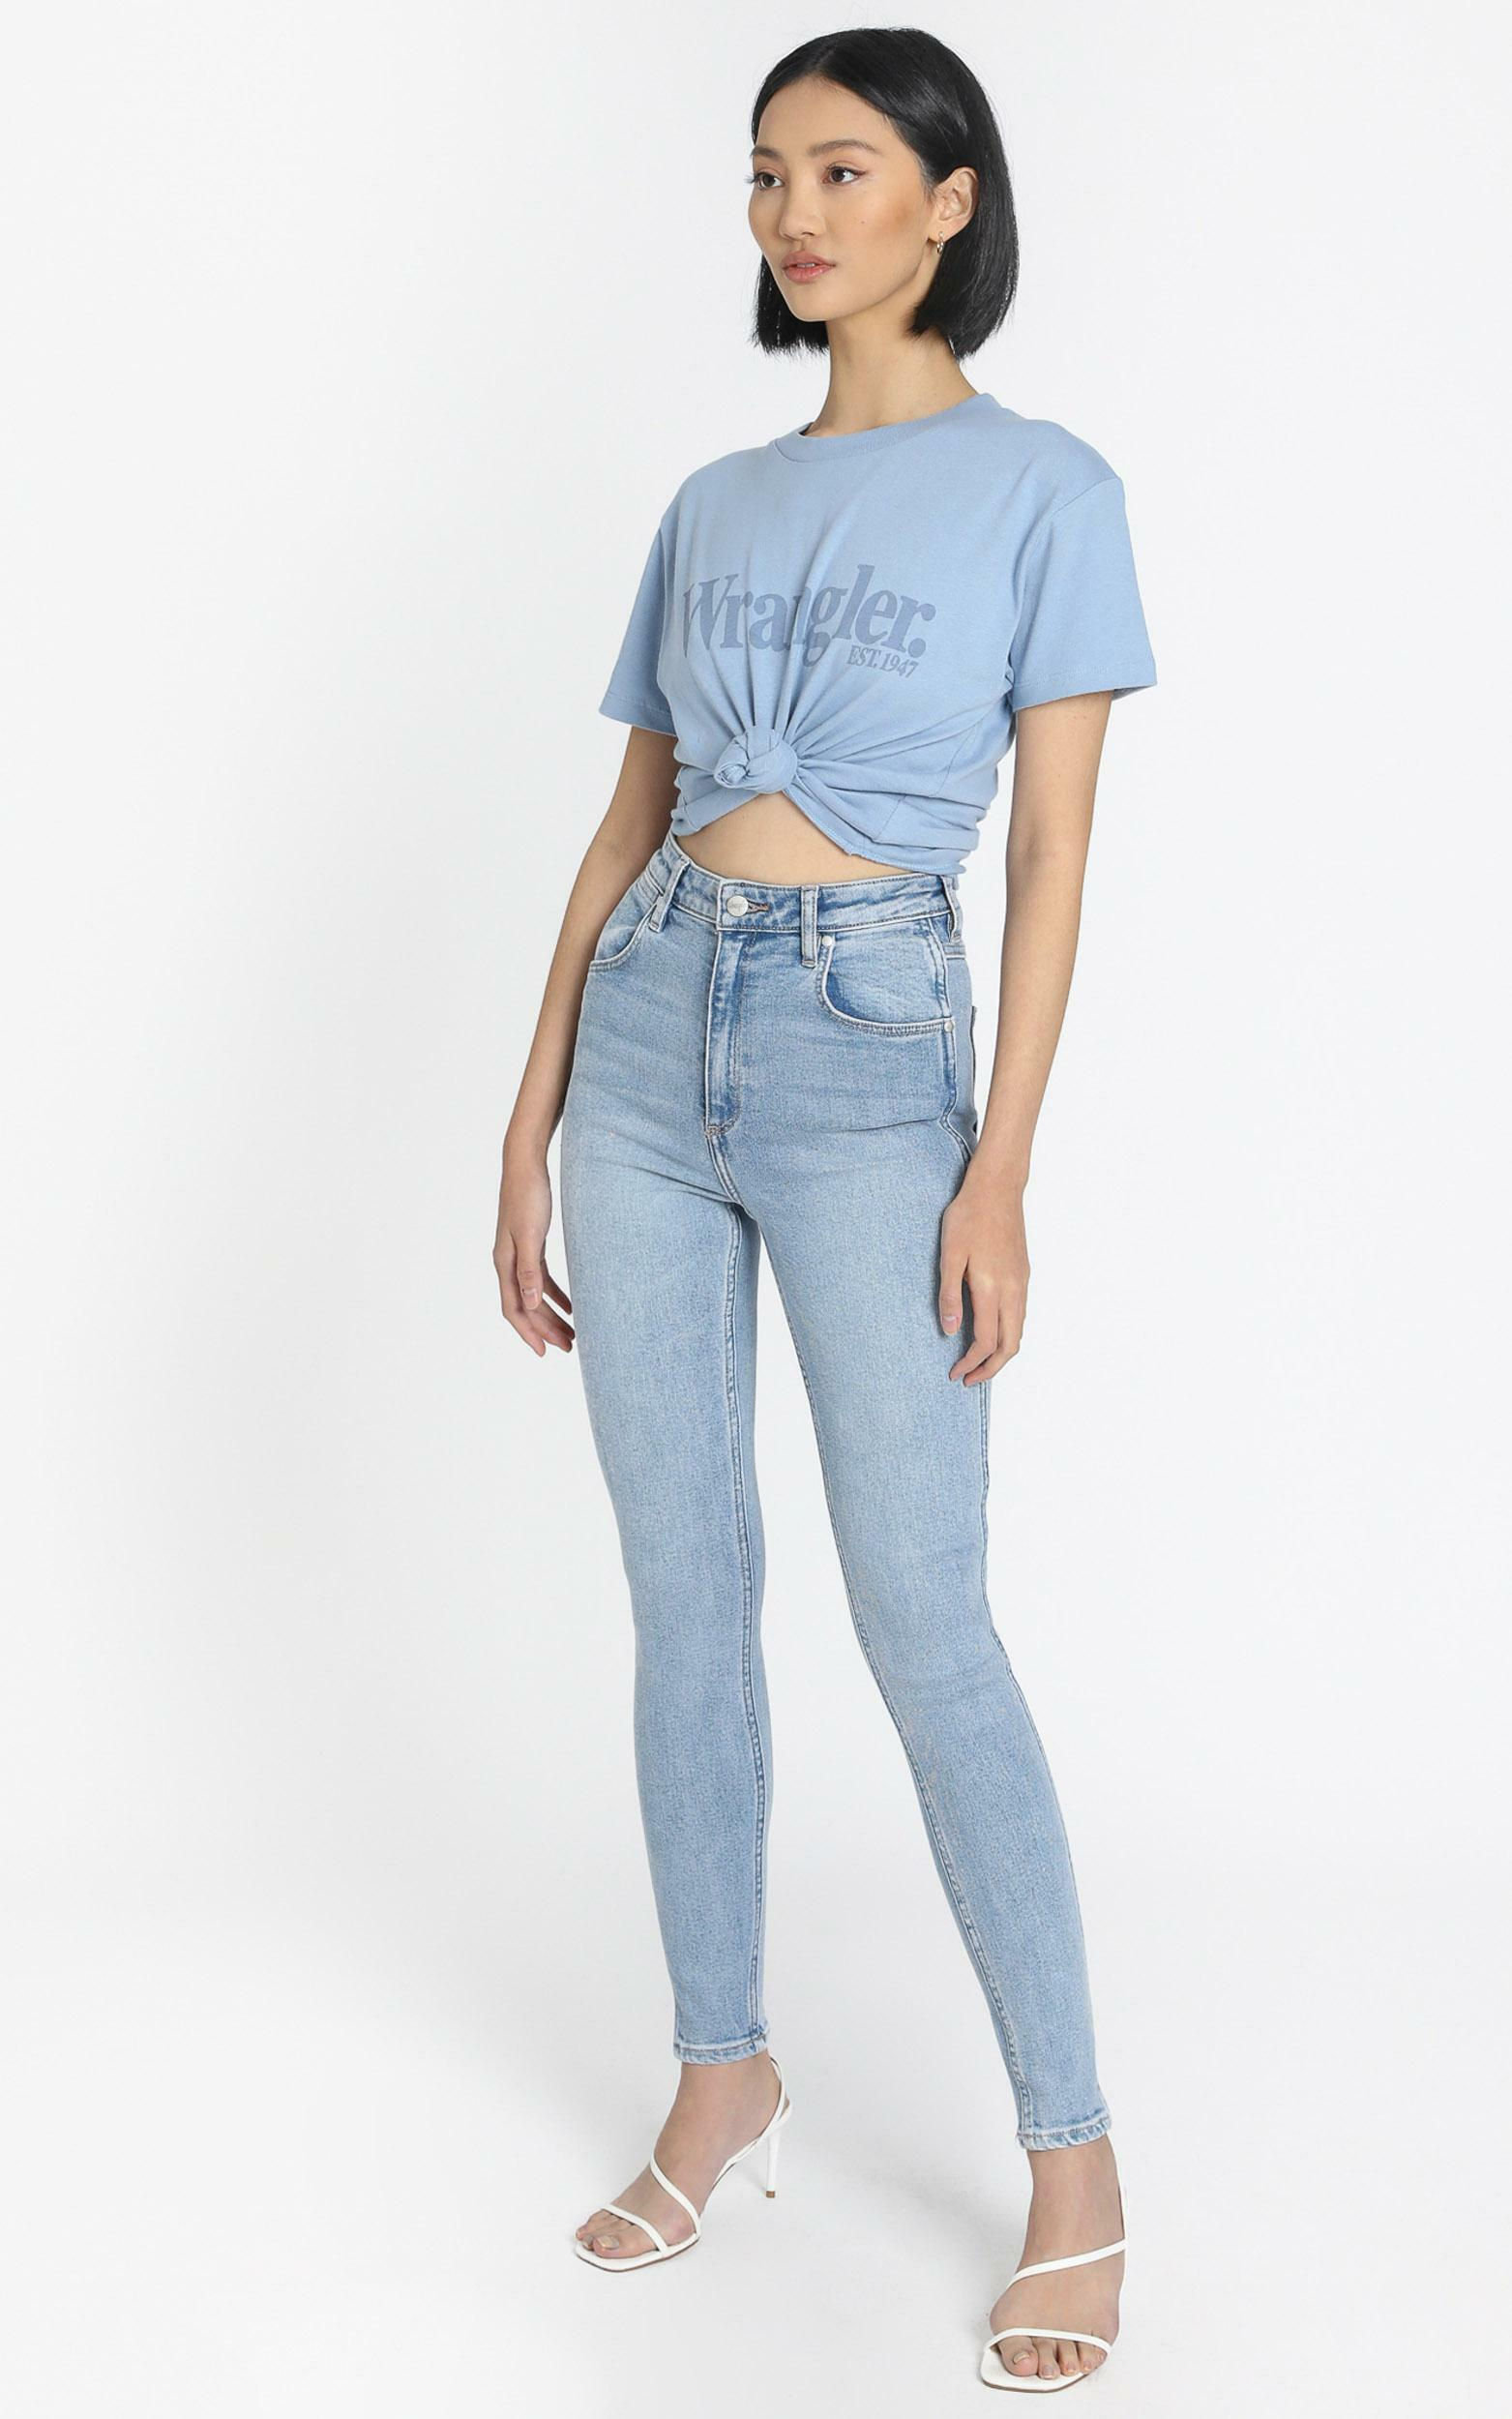 Wrangler - Lights Logo Tee in Dusty Blue - 6 (XS), Blue, hi-res image number null